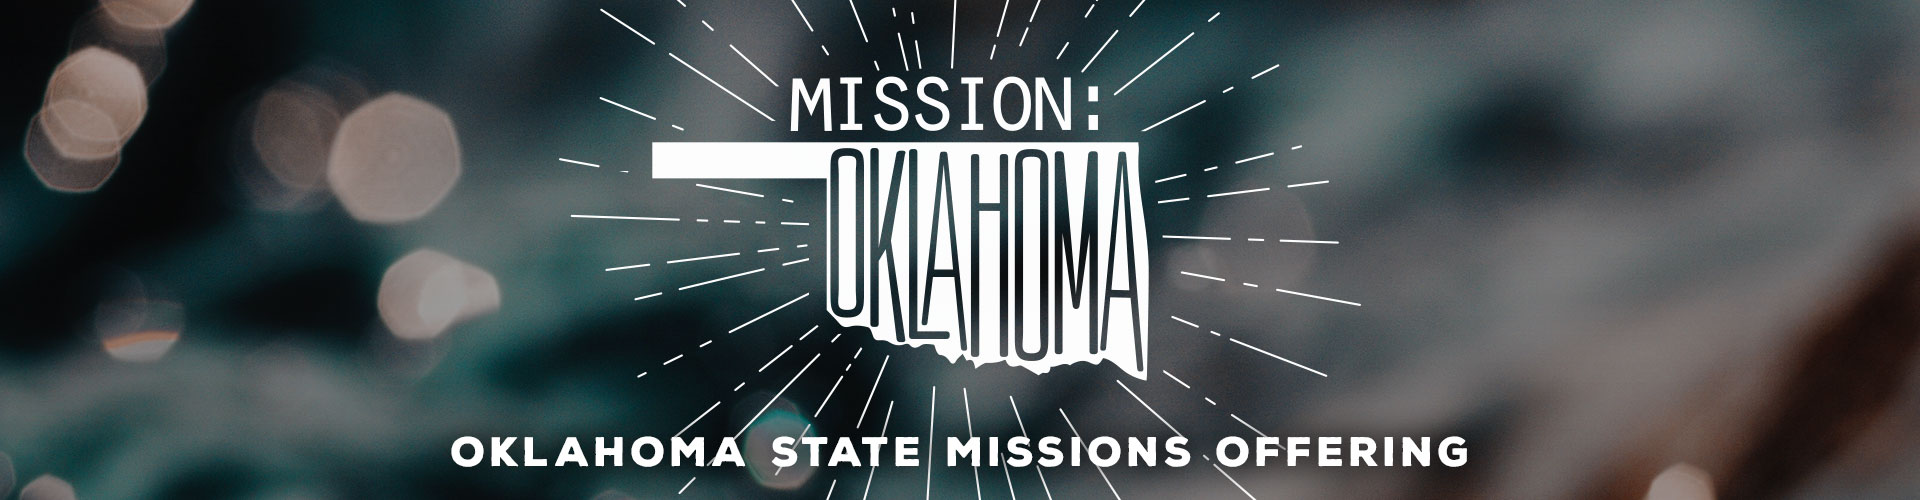 2018 Edna McMillan Oklahoma State Missions Offering